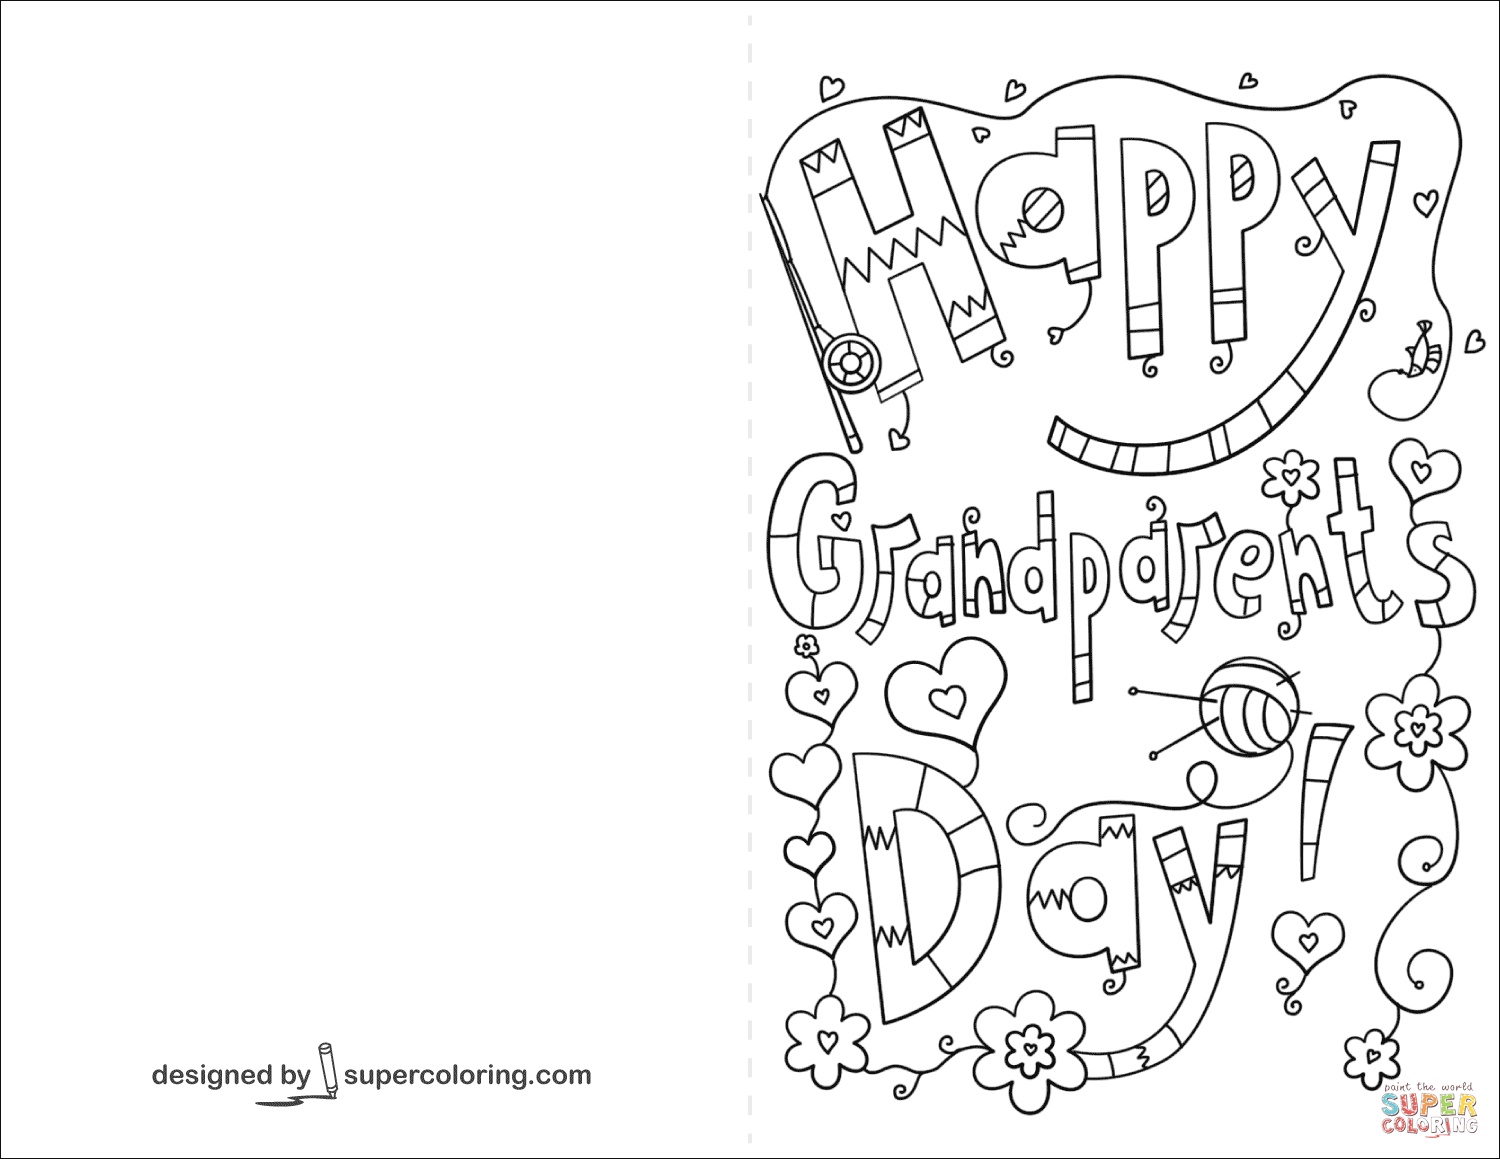 Grandparent's Day Coloring Pages